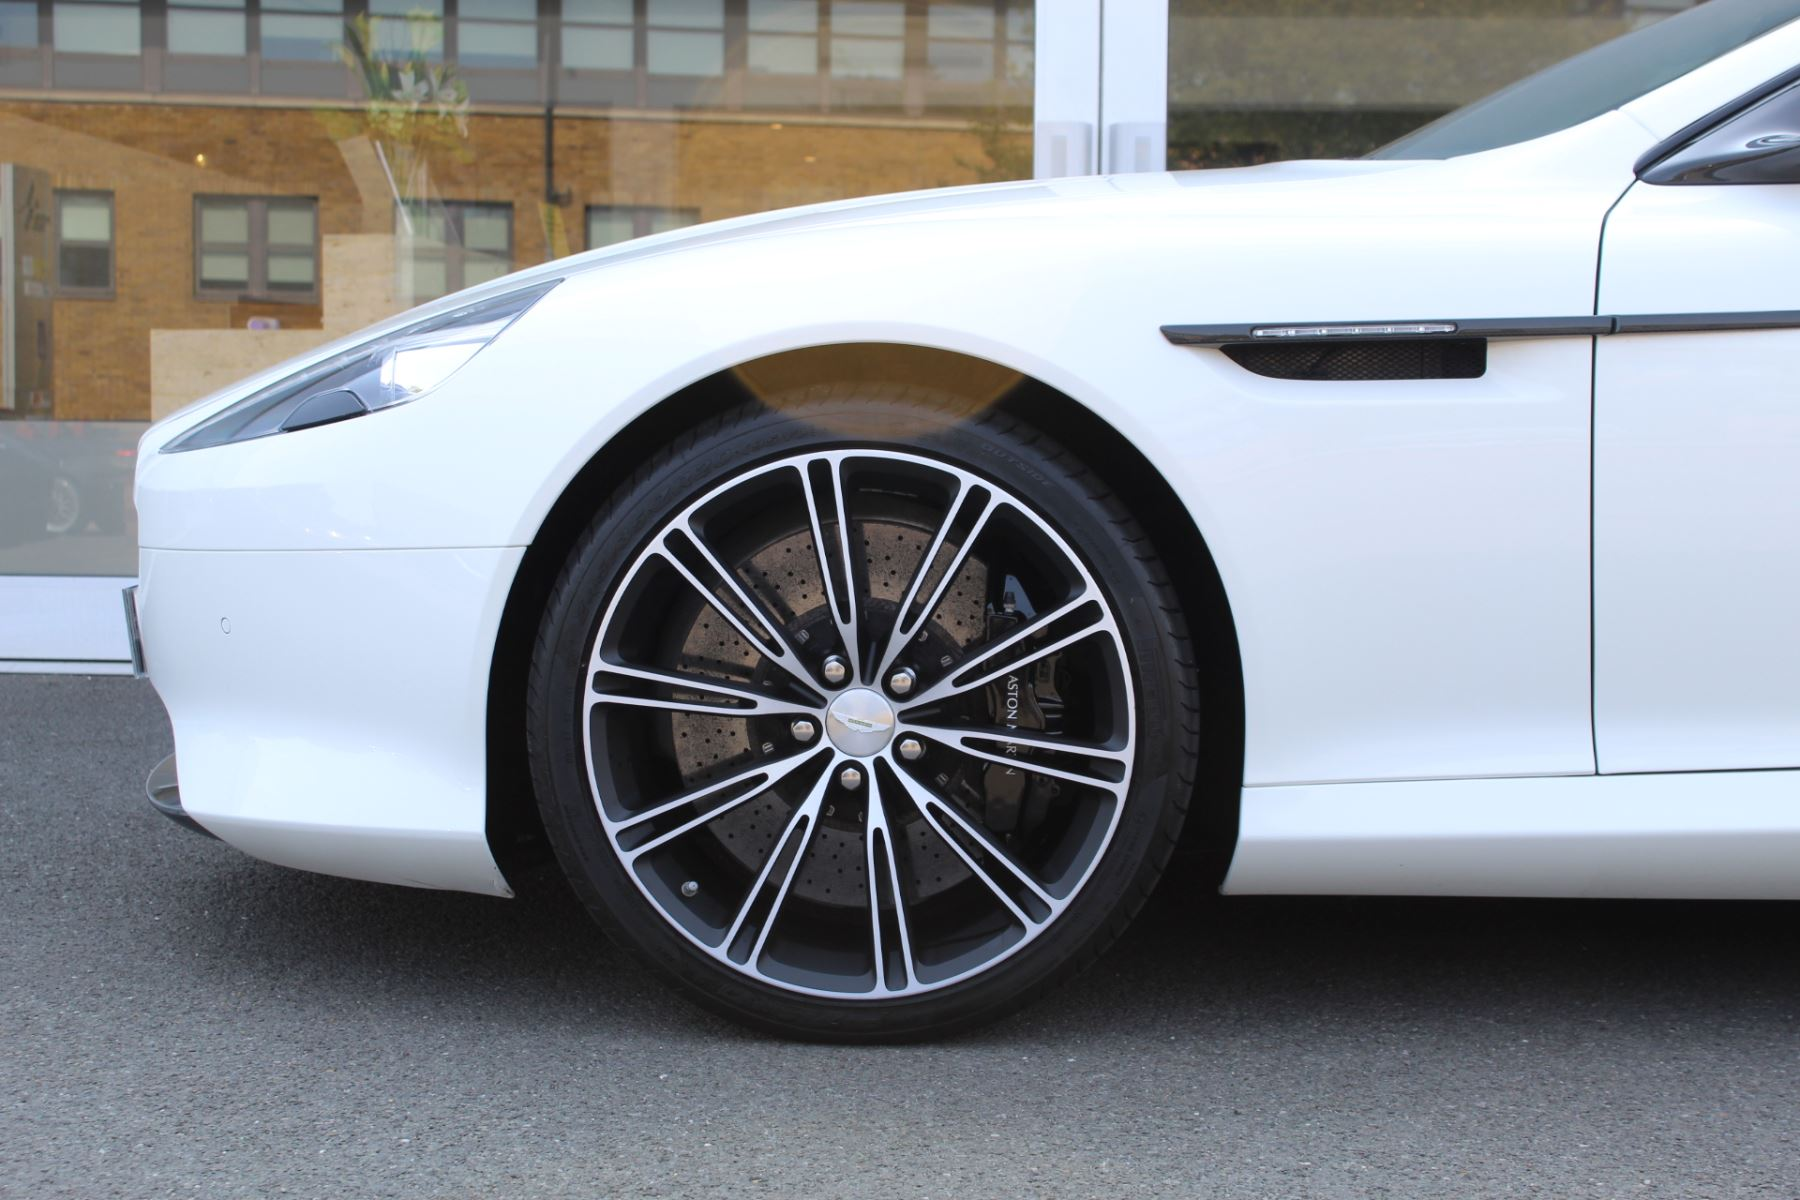 Aston Martin DB9 V12 2dr Touchtronic image 20